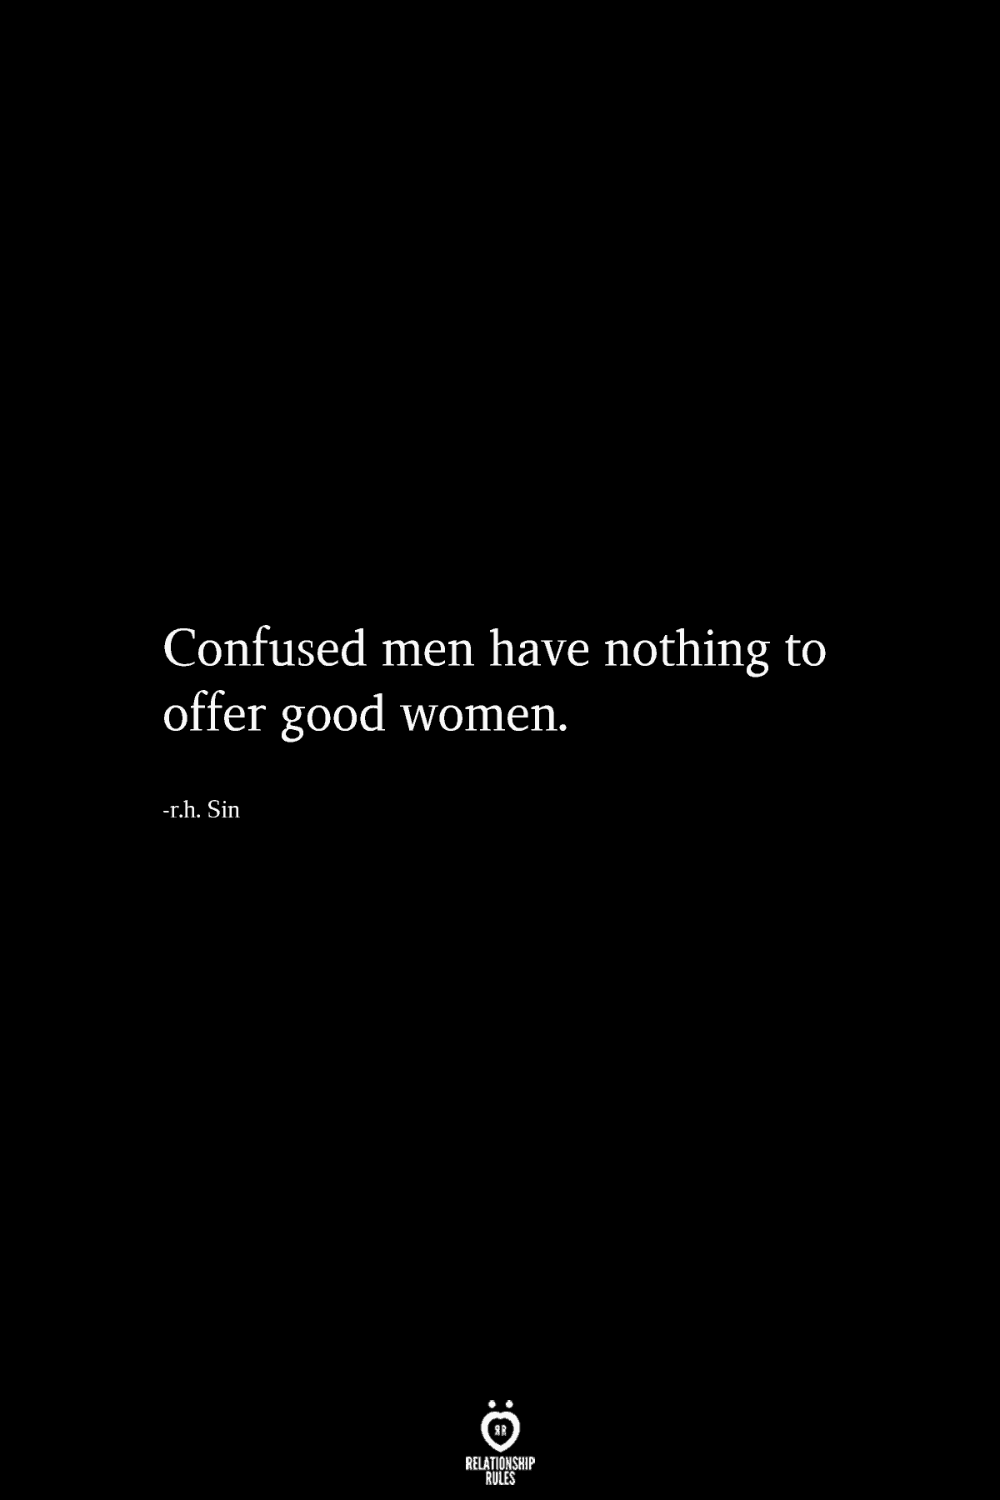 Confused Men Have Nothing To Offer Good Women